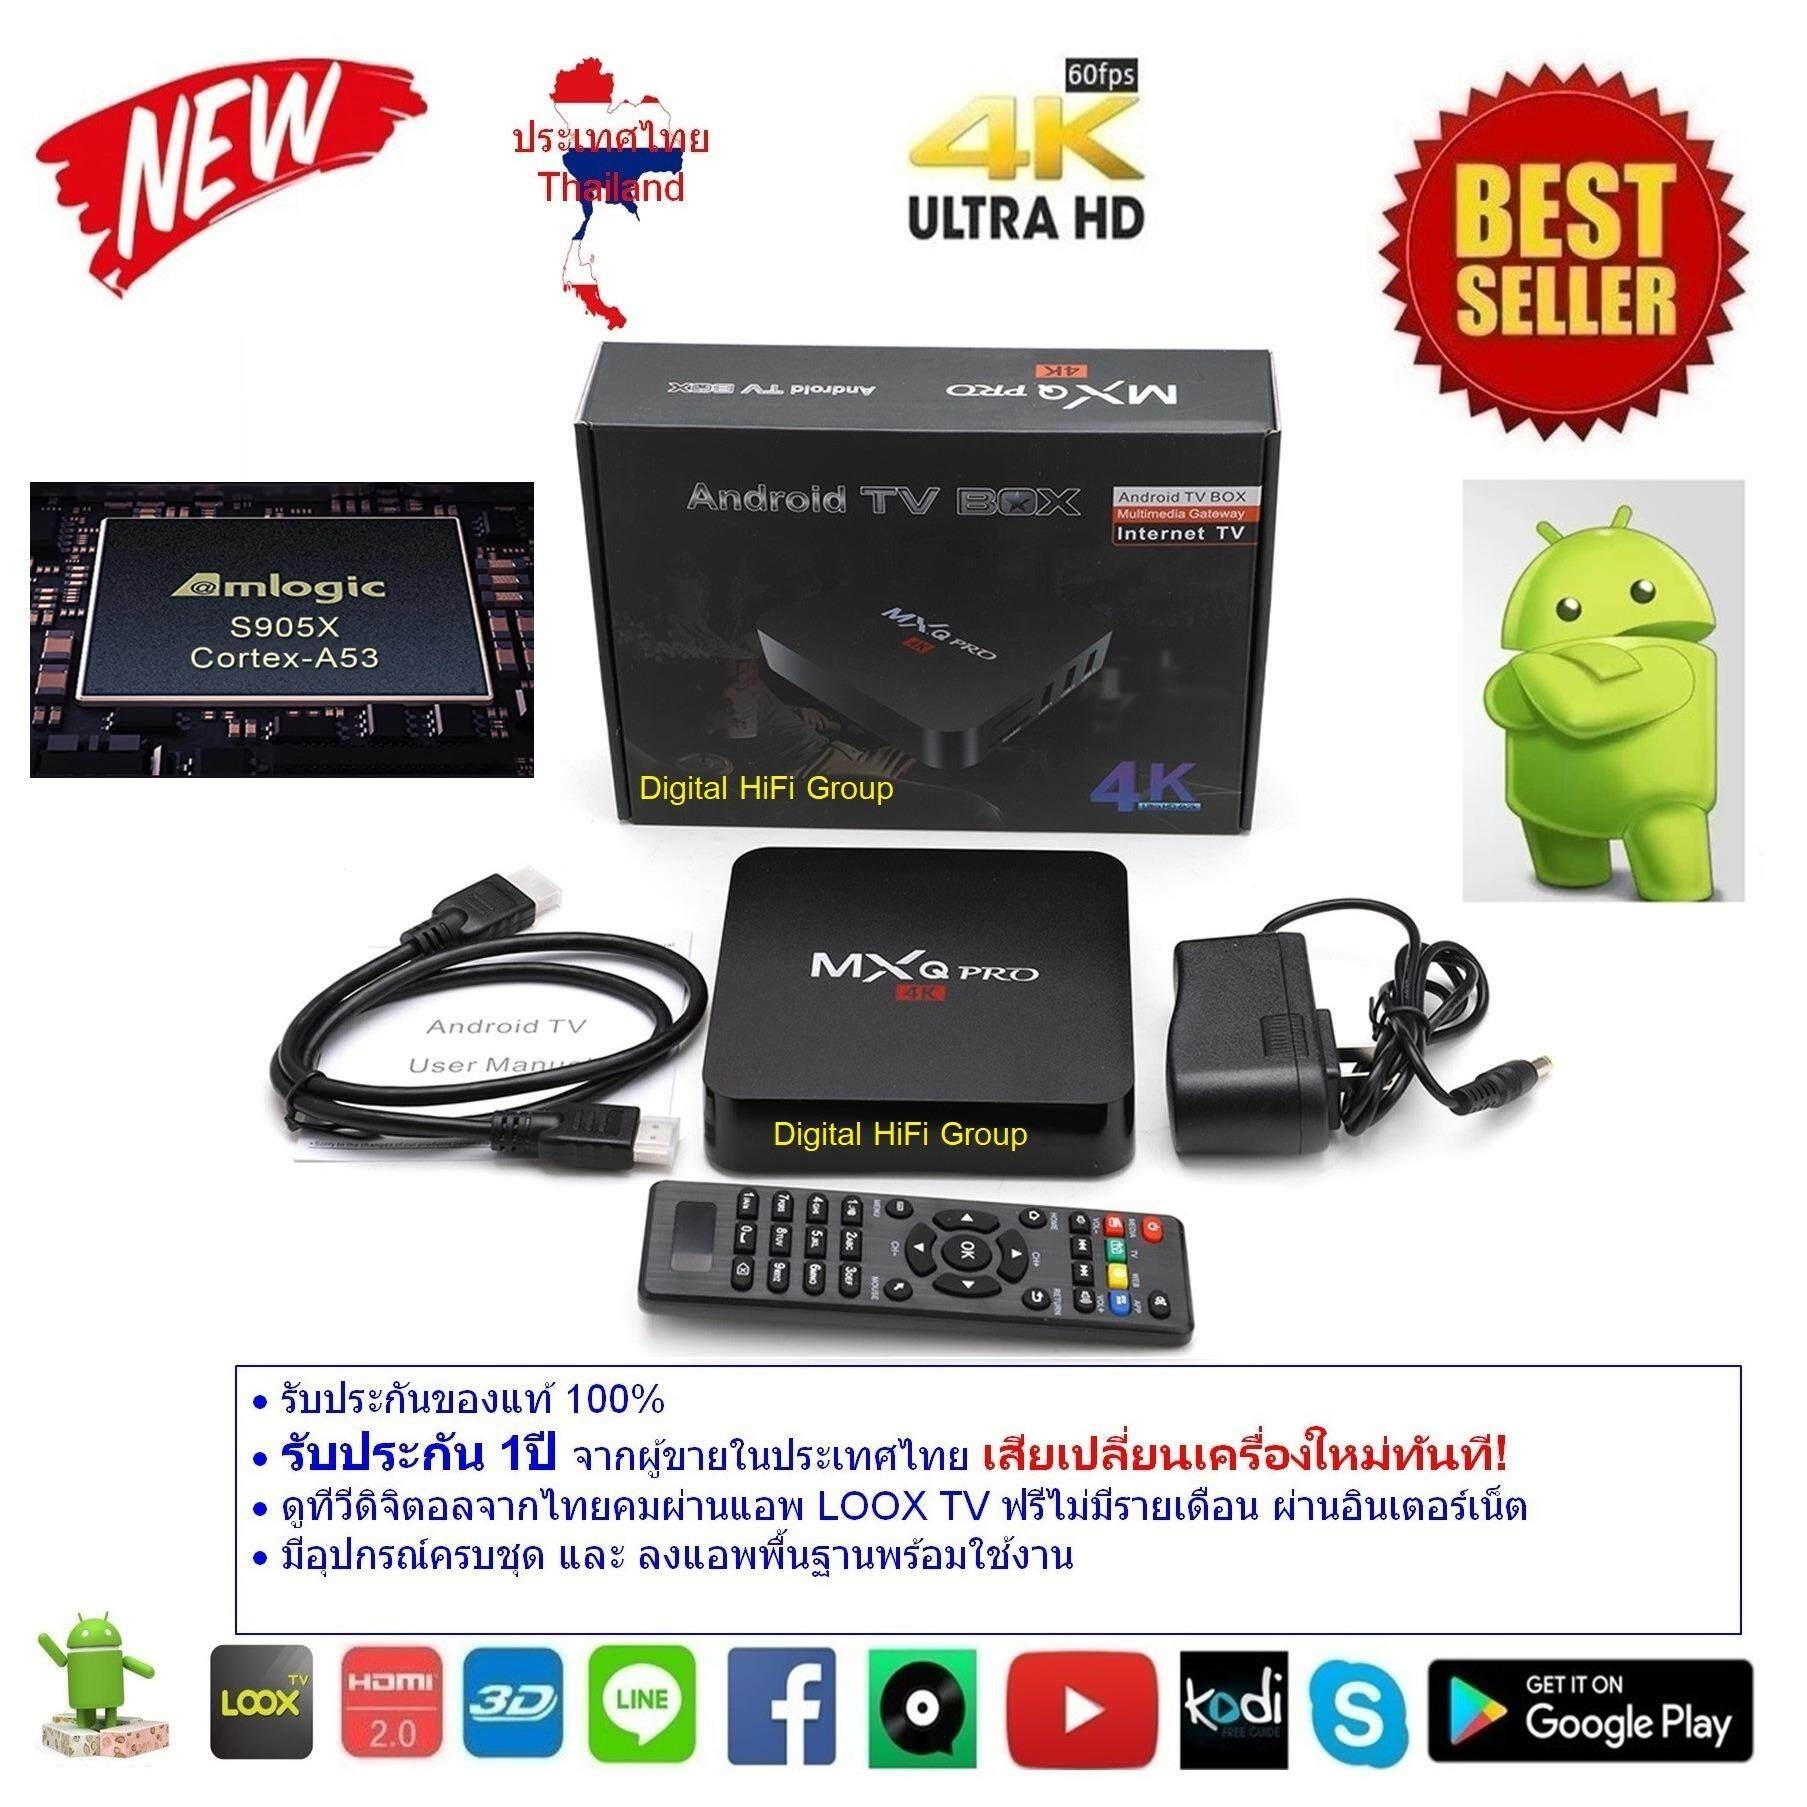 การใช้งาน  กำแพงเพชร Android Smart Box MXQ Pro UHD 4K 64Bit Quad Core Ram 1GB DDR3 Android Marshmallow 6.0